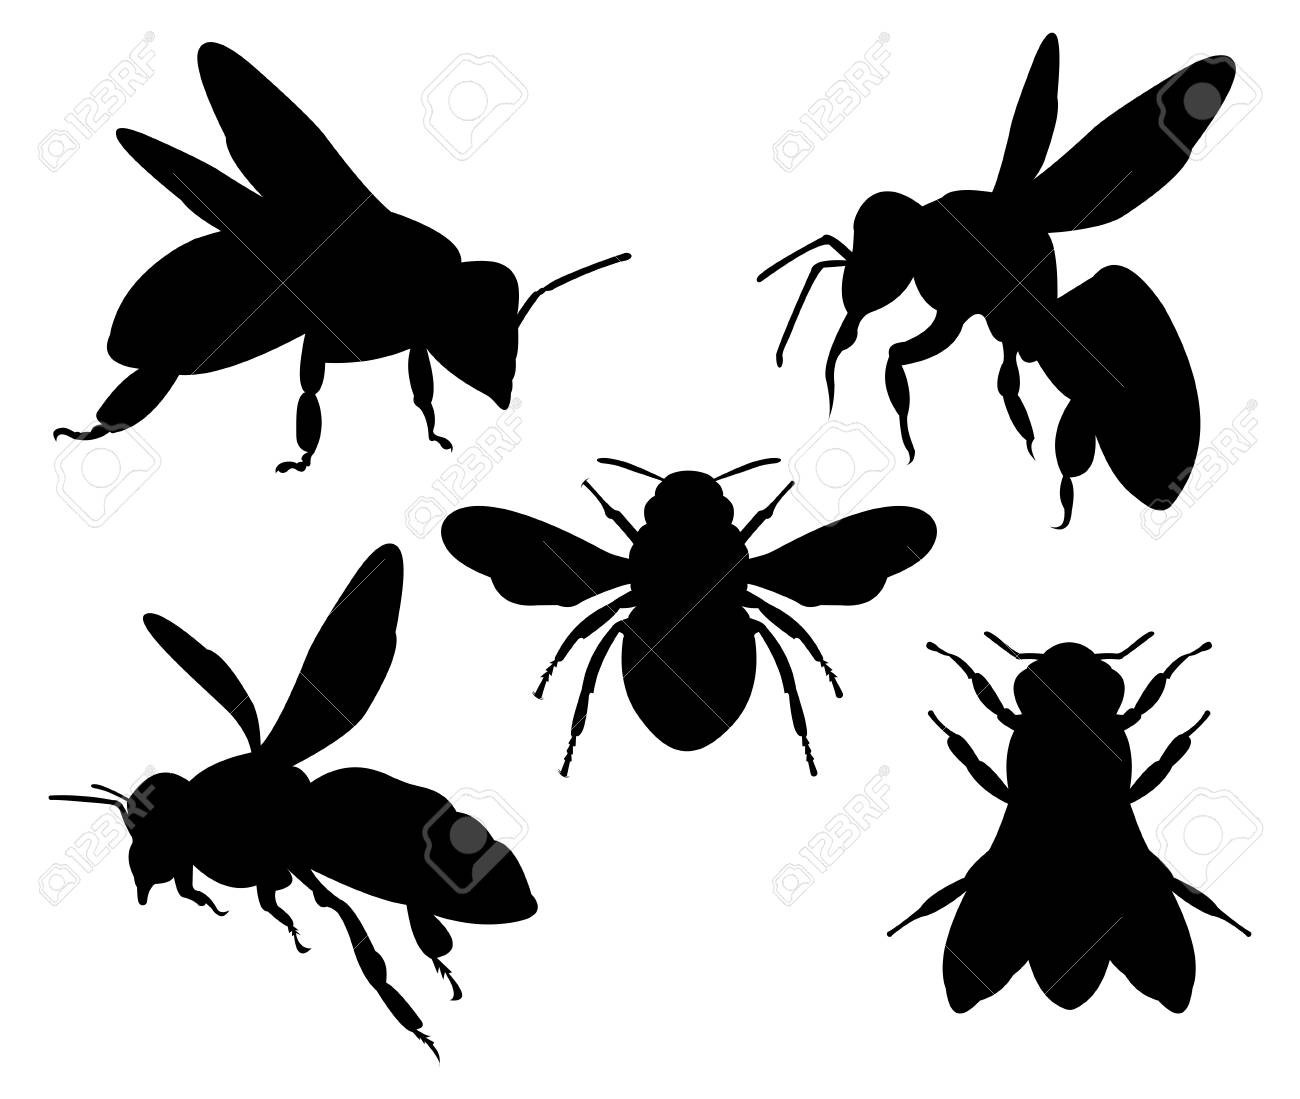 Honey Bee Silhouette Character Vector Logo Design Template Inspiration Royalty Free Cliparts Vectors And Stock Illustration Image 109242970 Here you can explore hq bee silhouette transparent illustrations, icons and clipart with filter setting polish your personal project or design with these bee silhouette transparent png images, make it. honey bee silhouette character vector logo design template inspiration